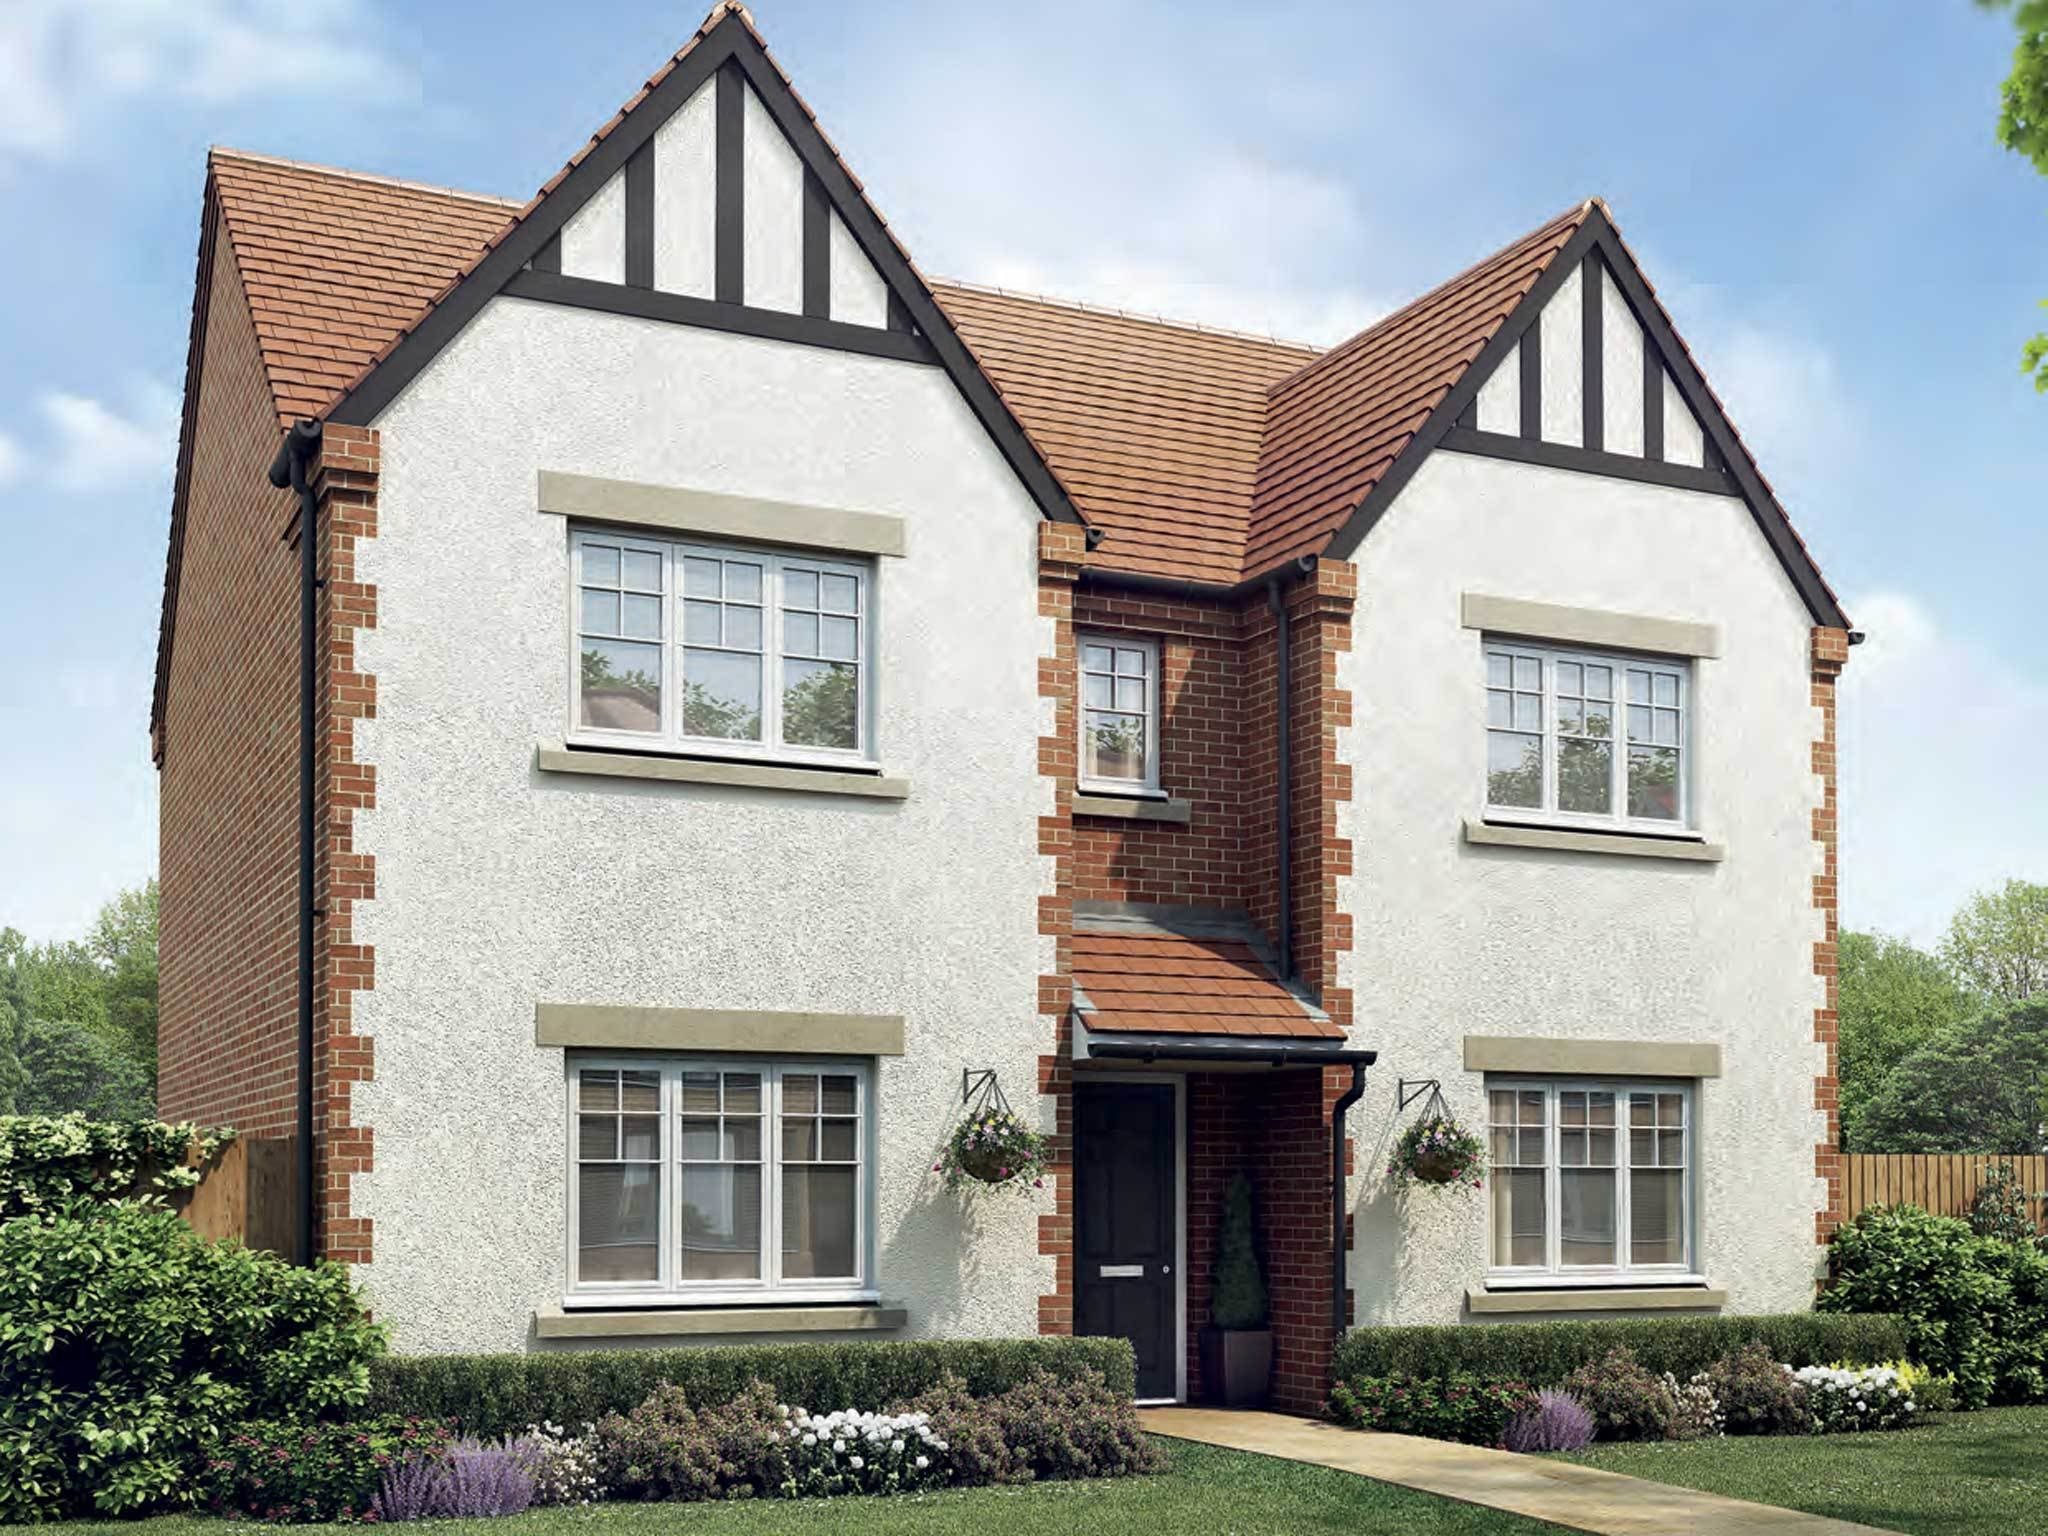 Best Houses For Sale In Harborne West Midlands B32 2Eh With Pictures